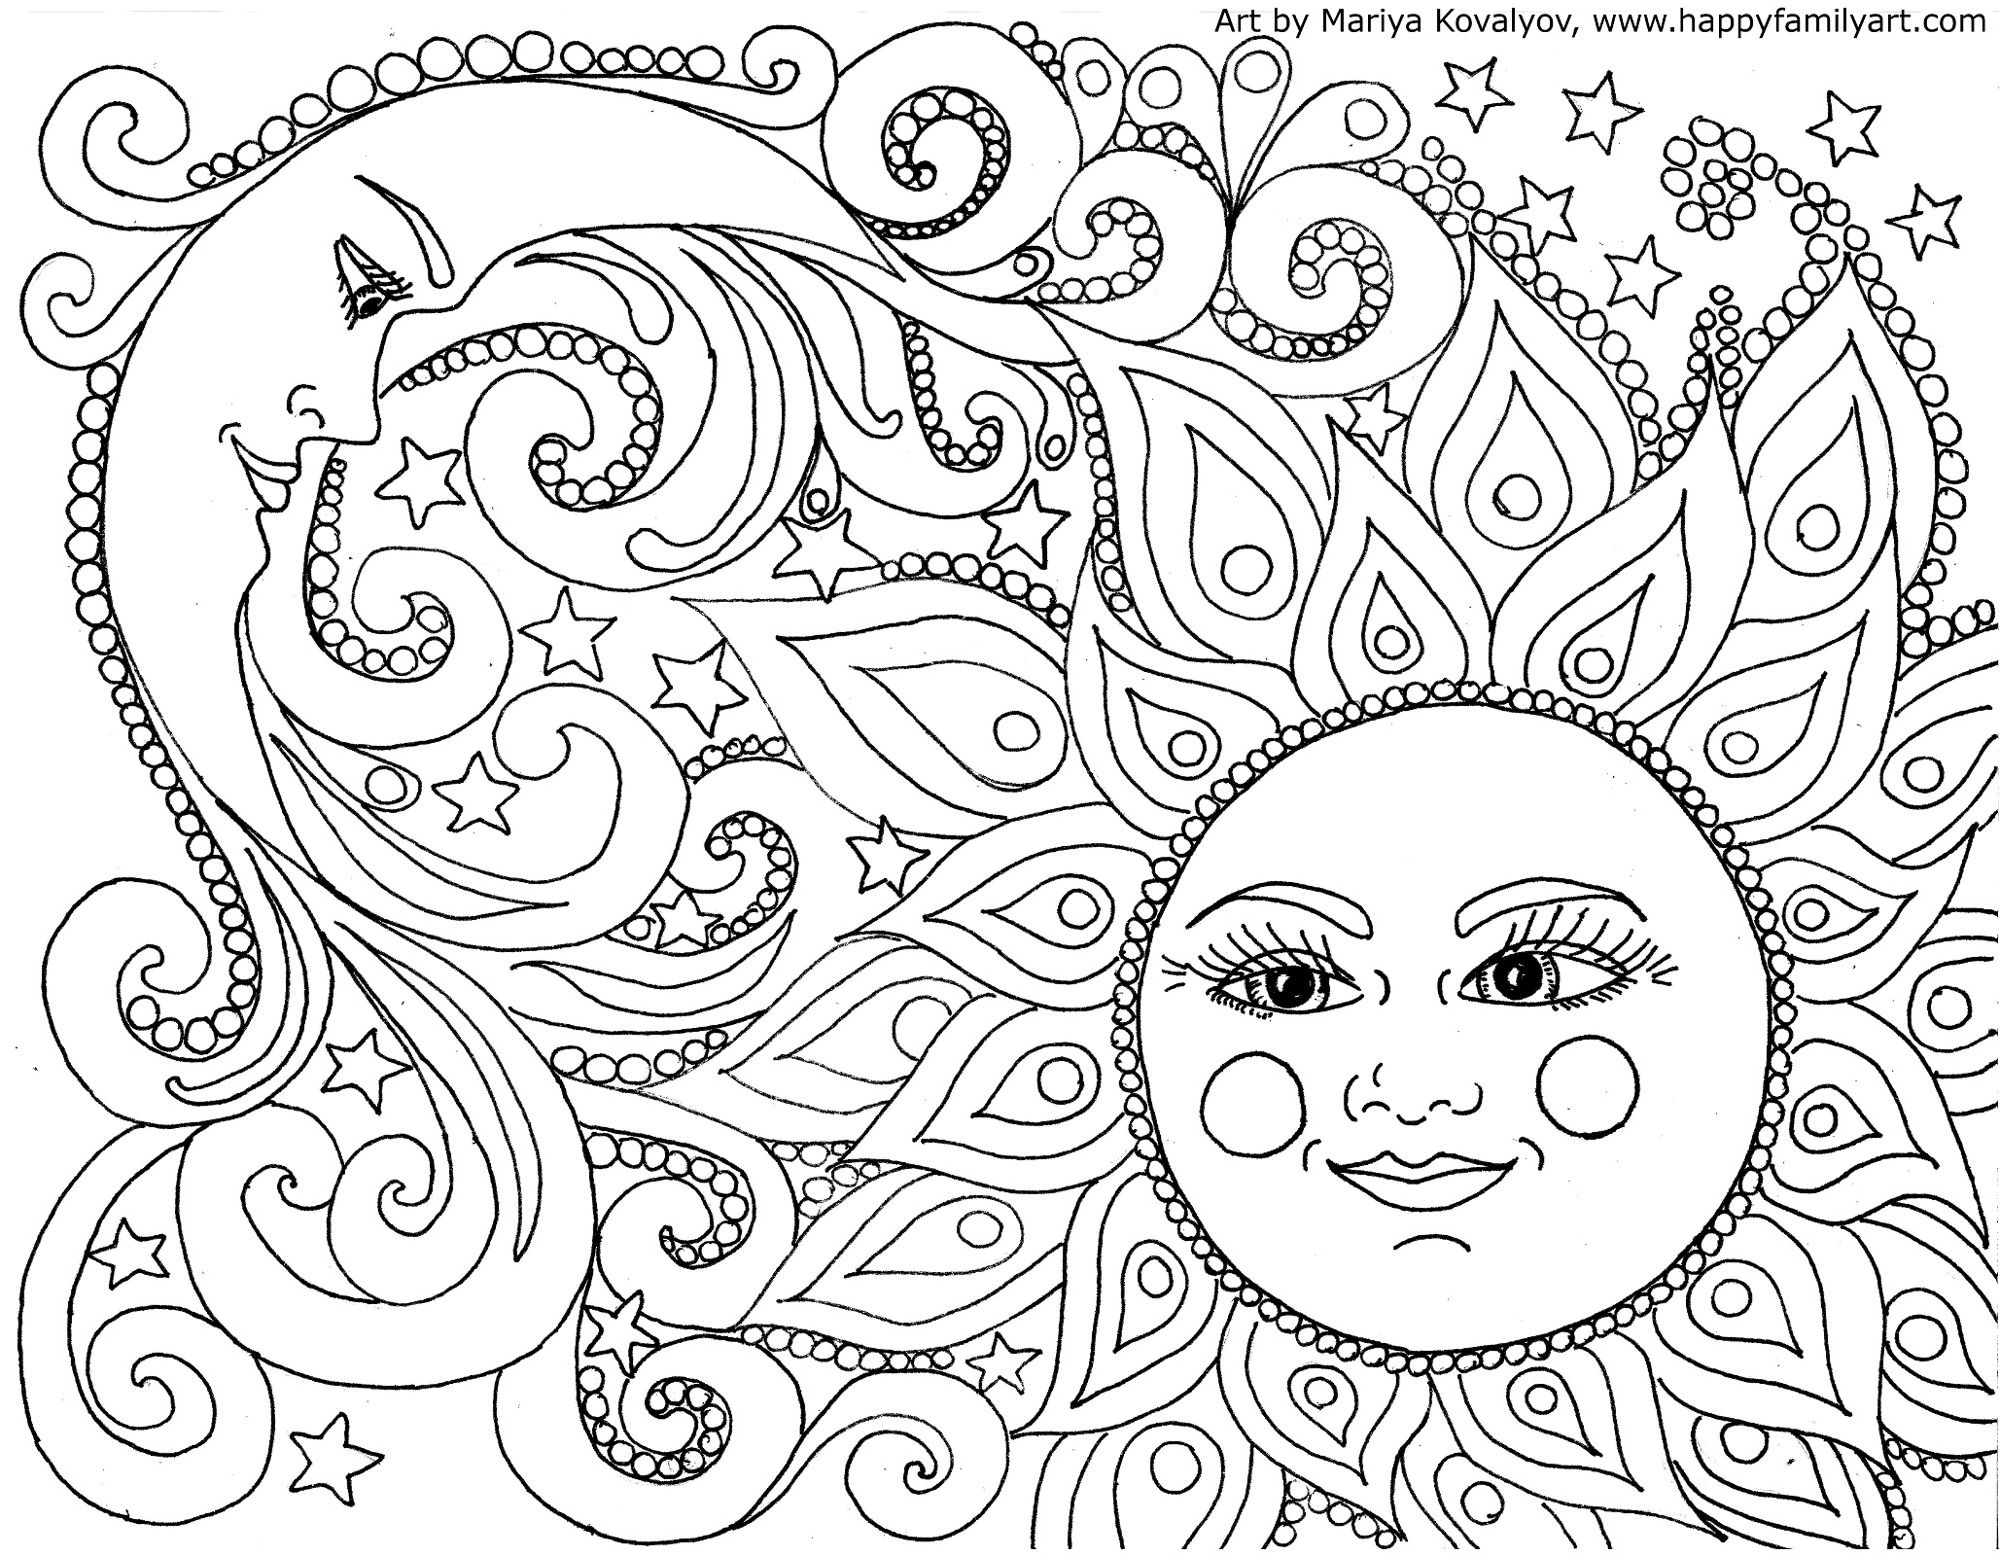 original and fun coloring pages | Mond, Sonne und Ausmalbilder